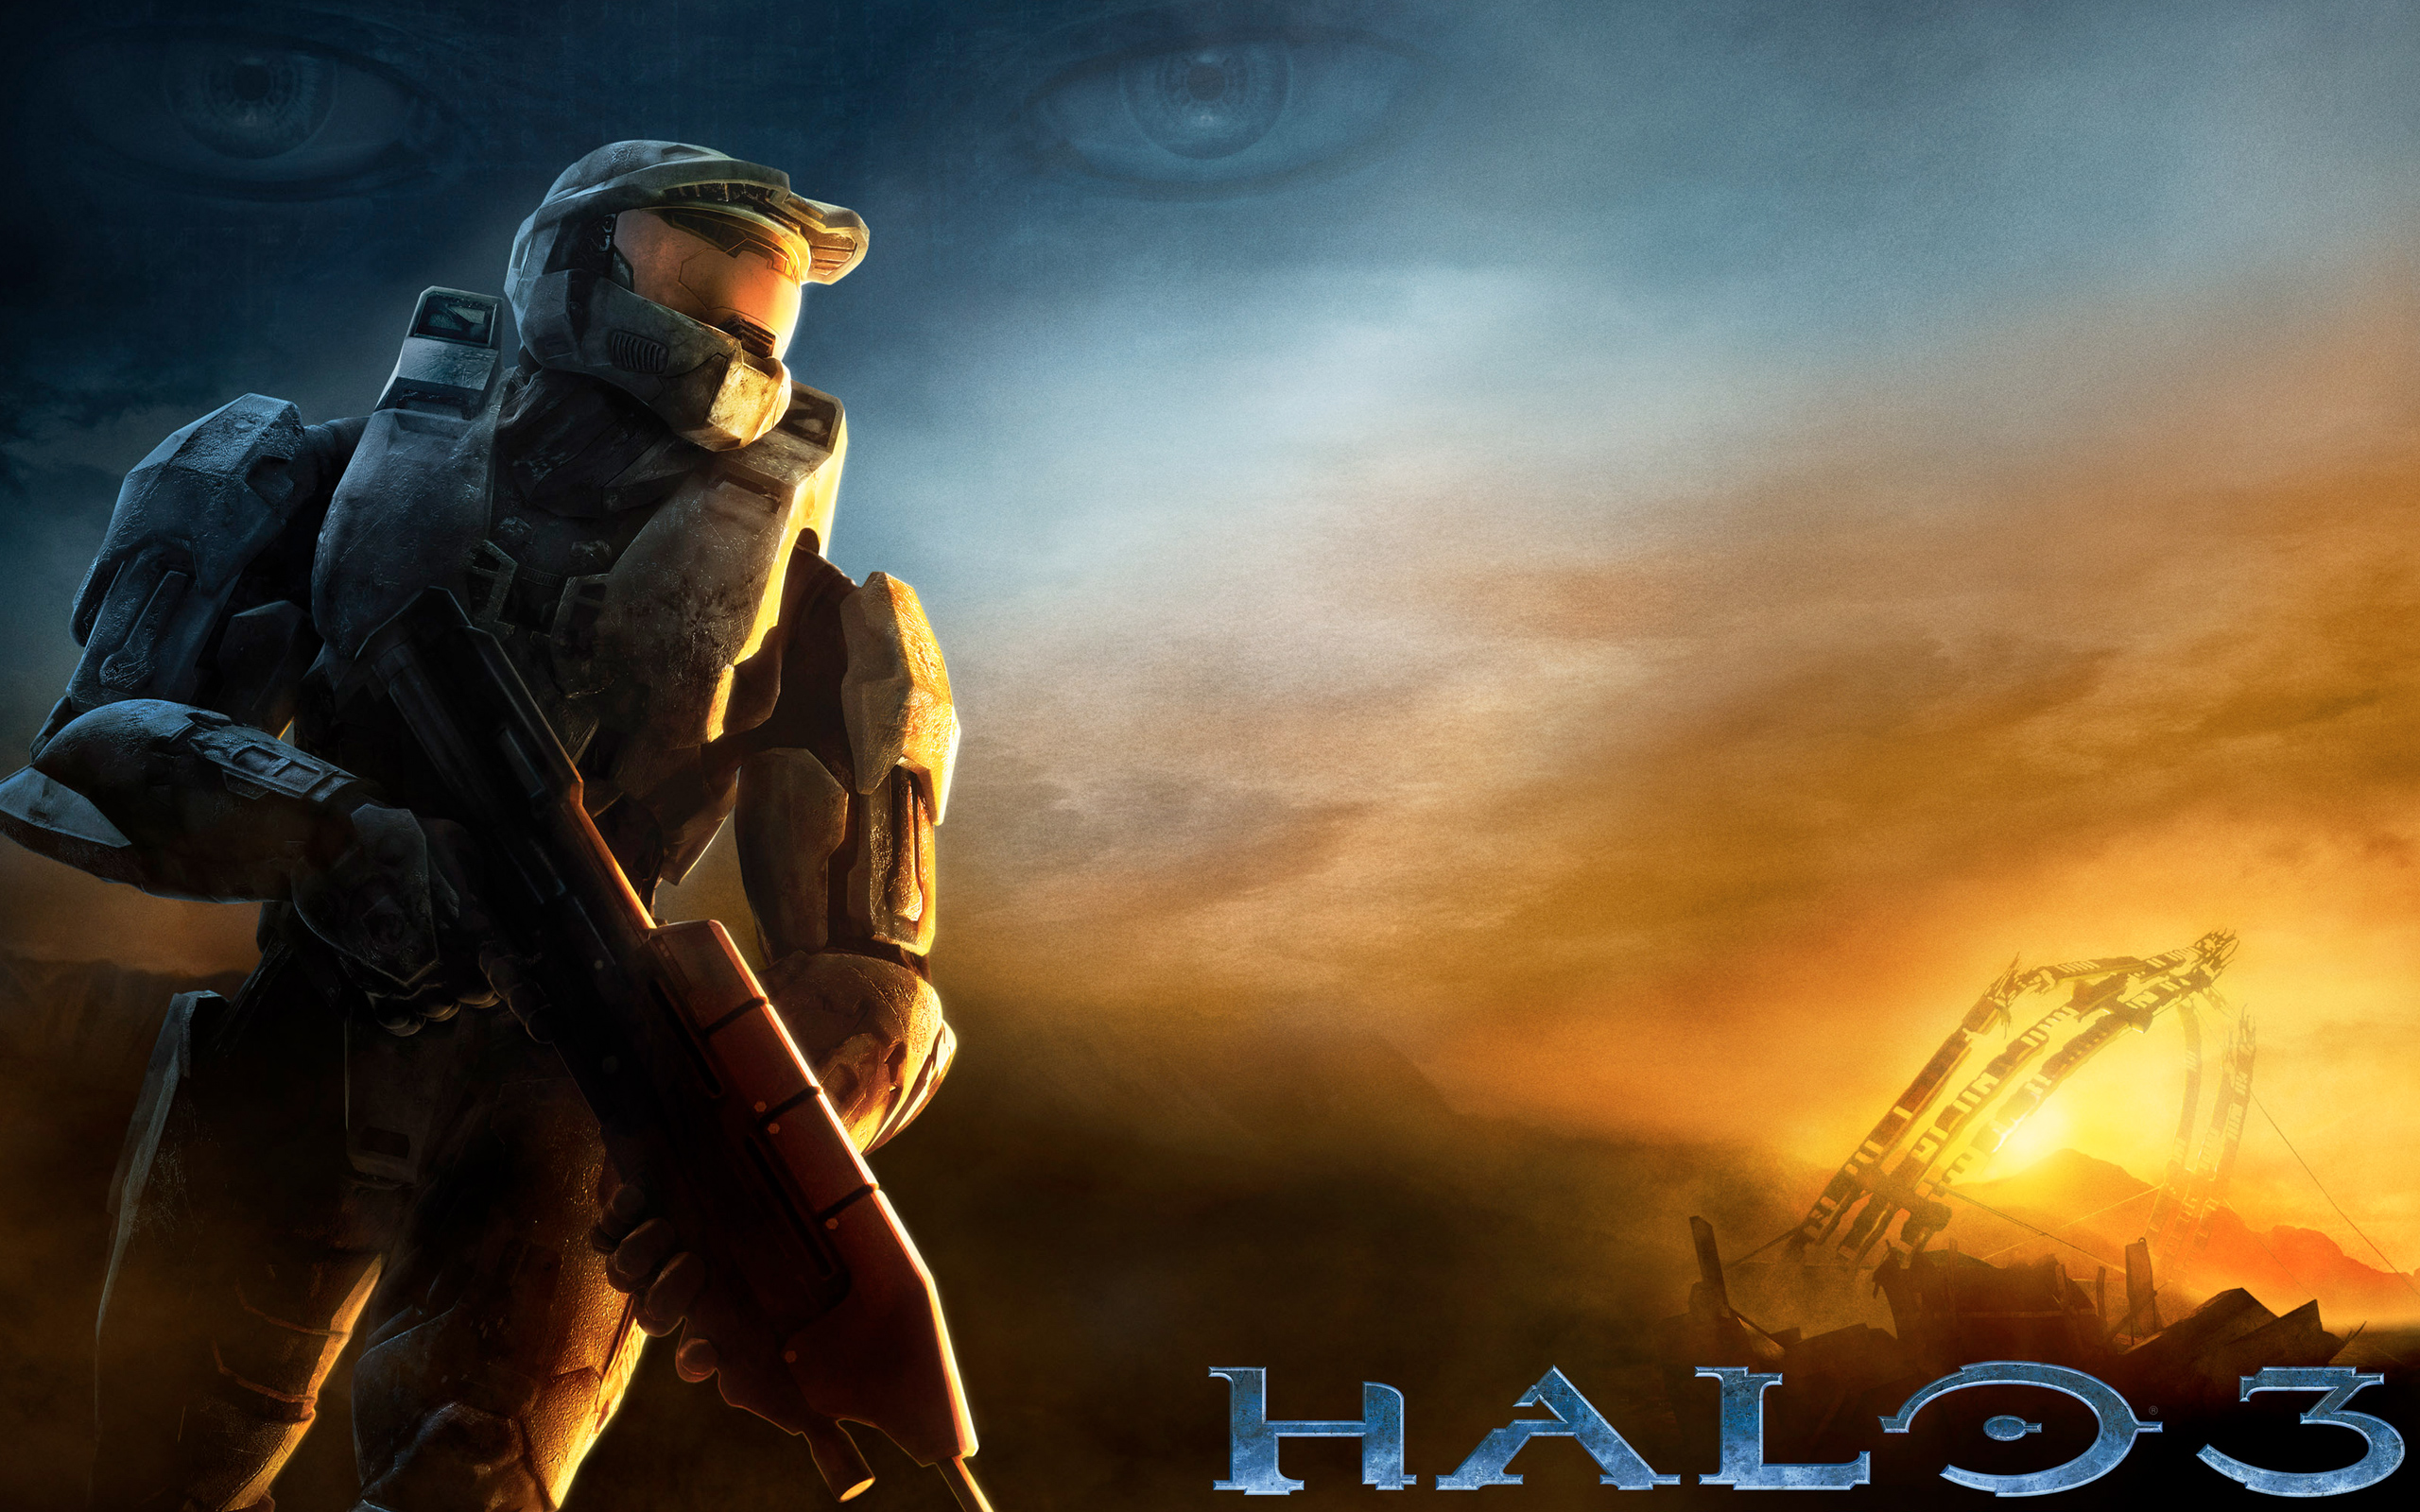 HALO 3 Game 669.33 Kb